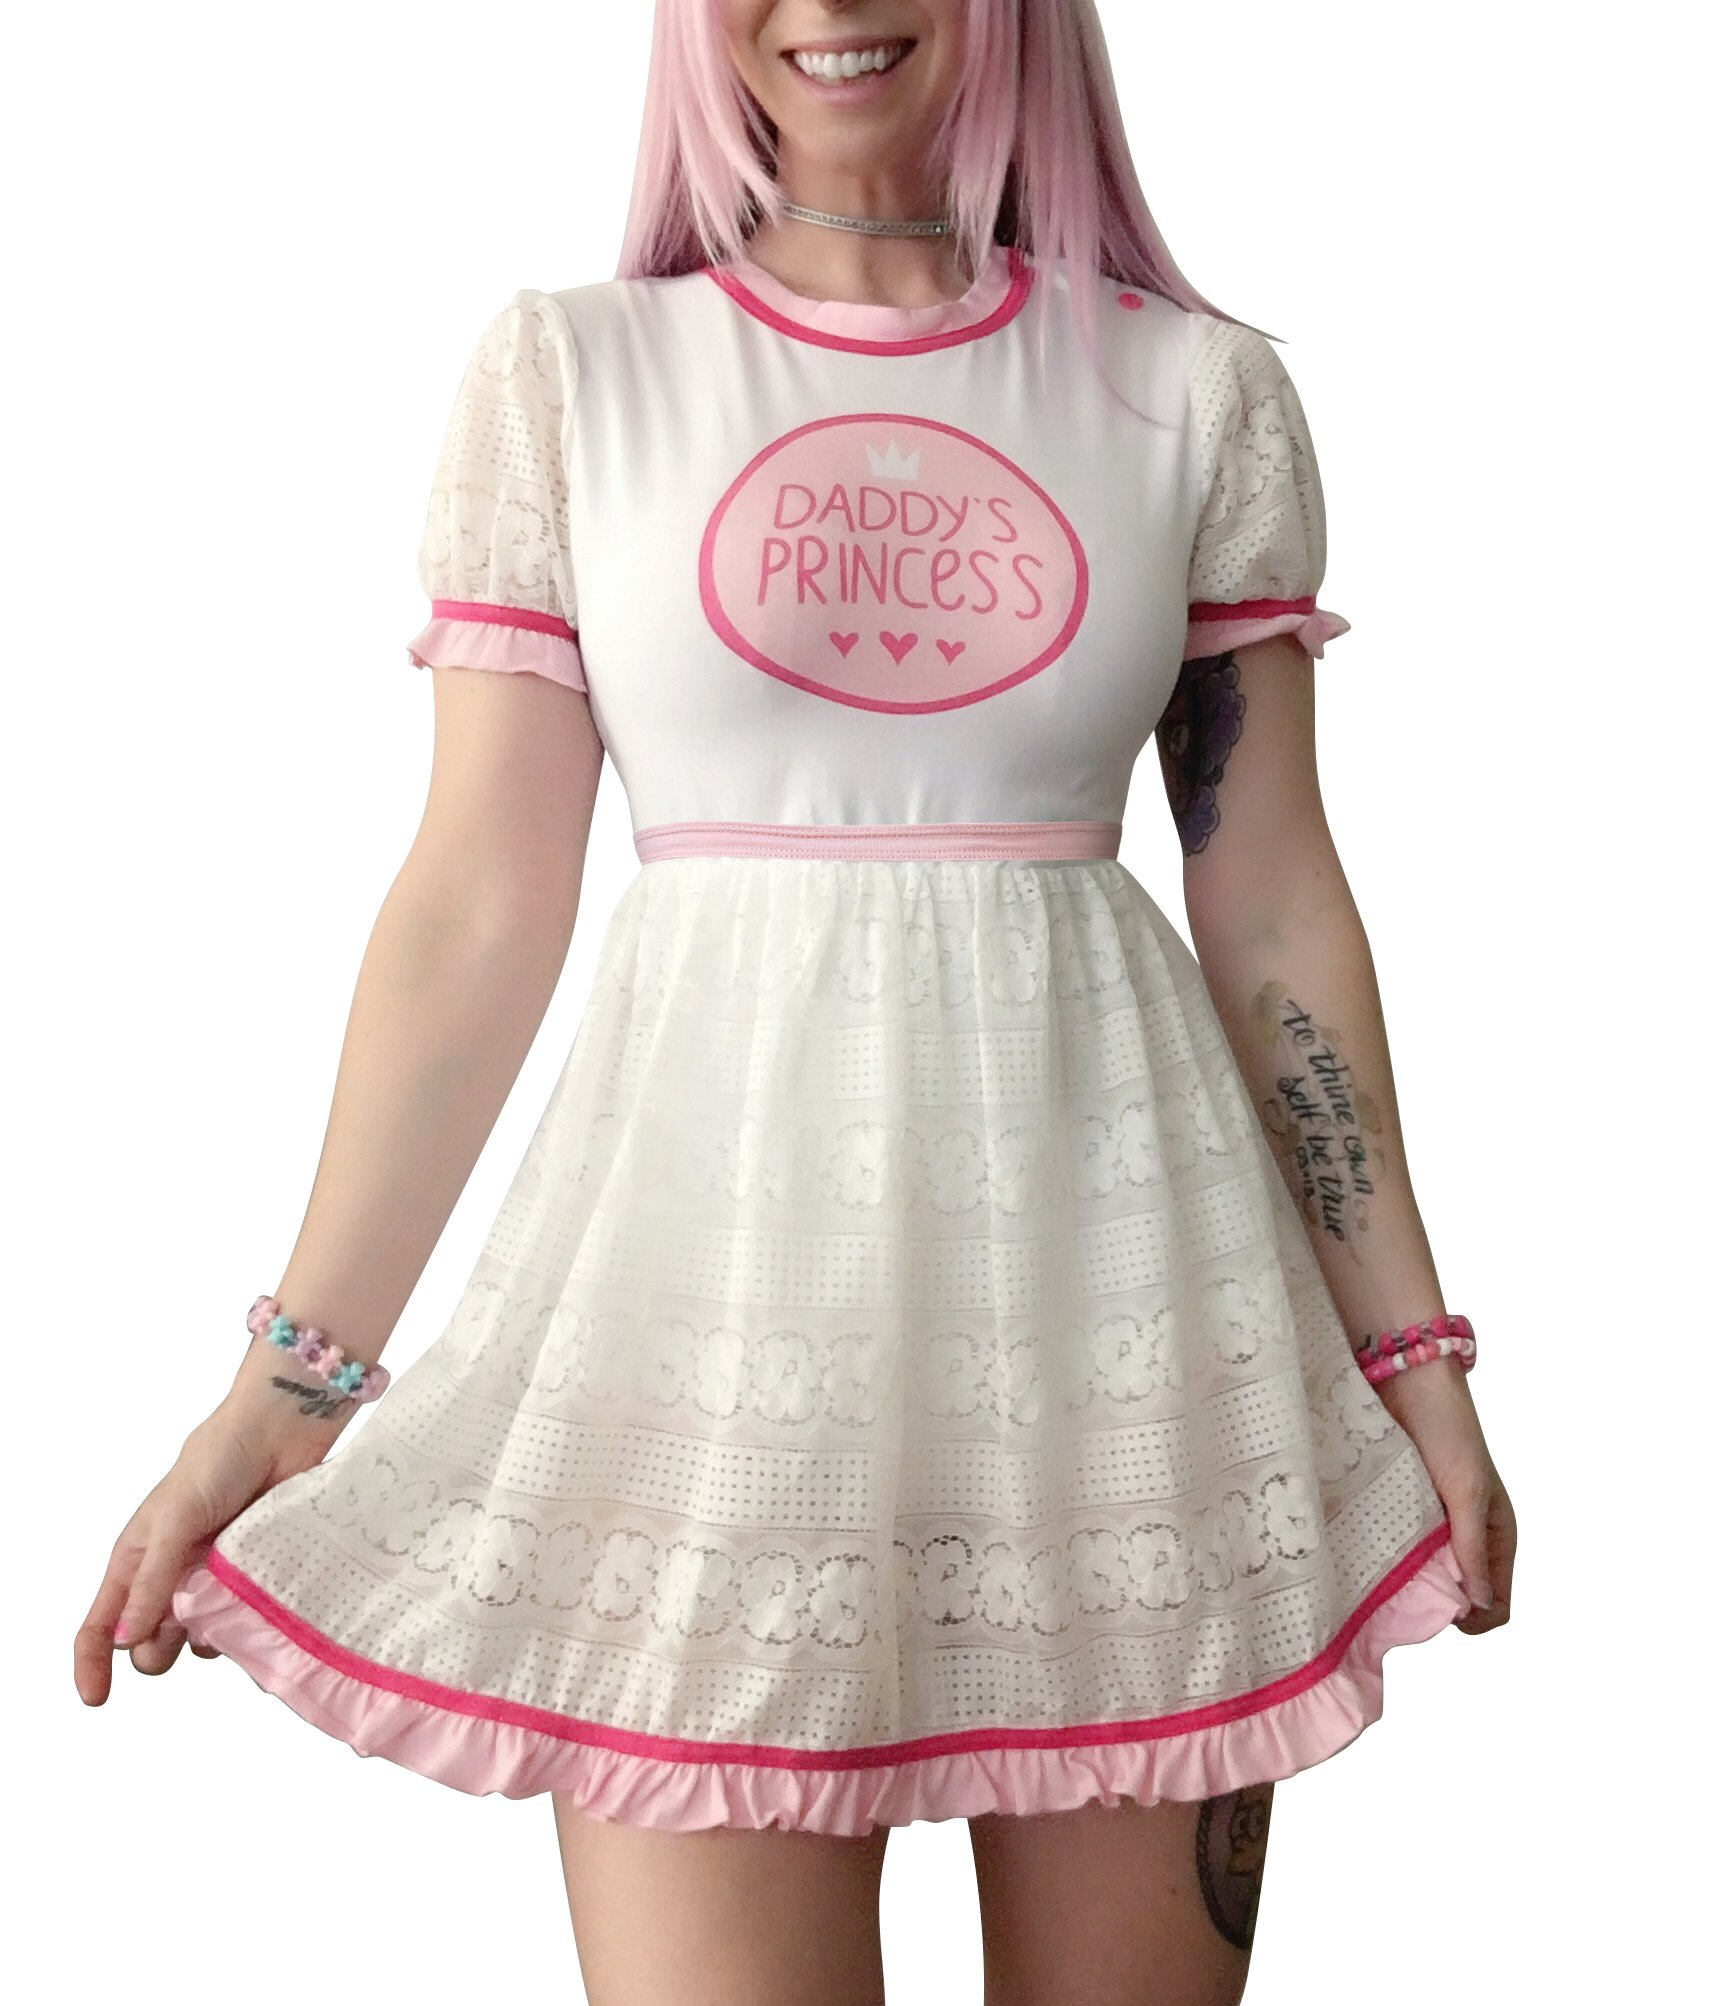 e294e9756 Galleon - Littleforbig Adult Baby Diaper Lover ABDL Snap Crotch Romper  Onesie - Daddy's Princess Lacy Dress